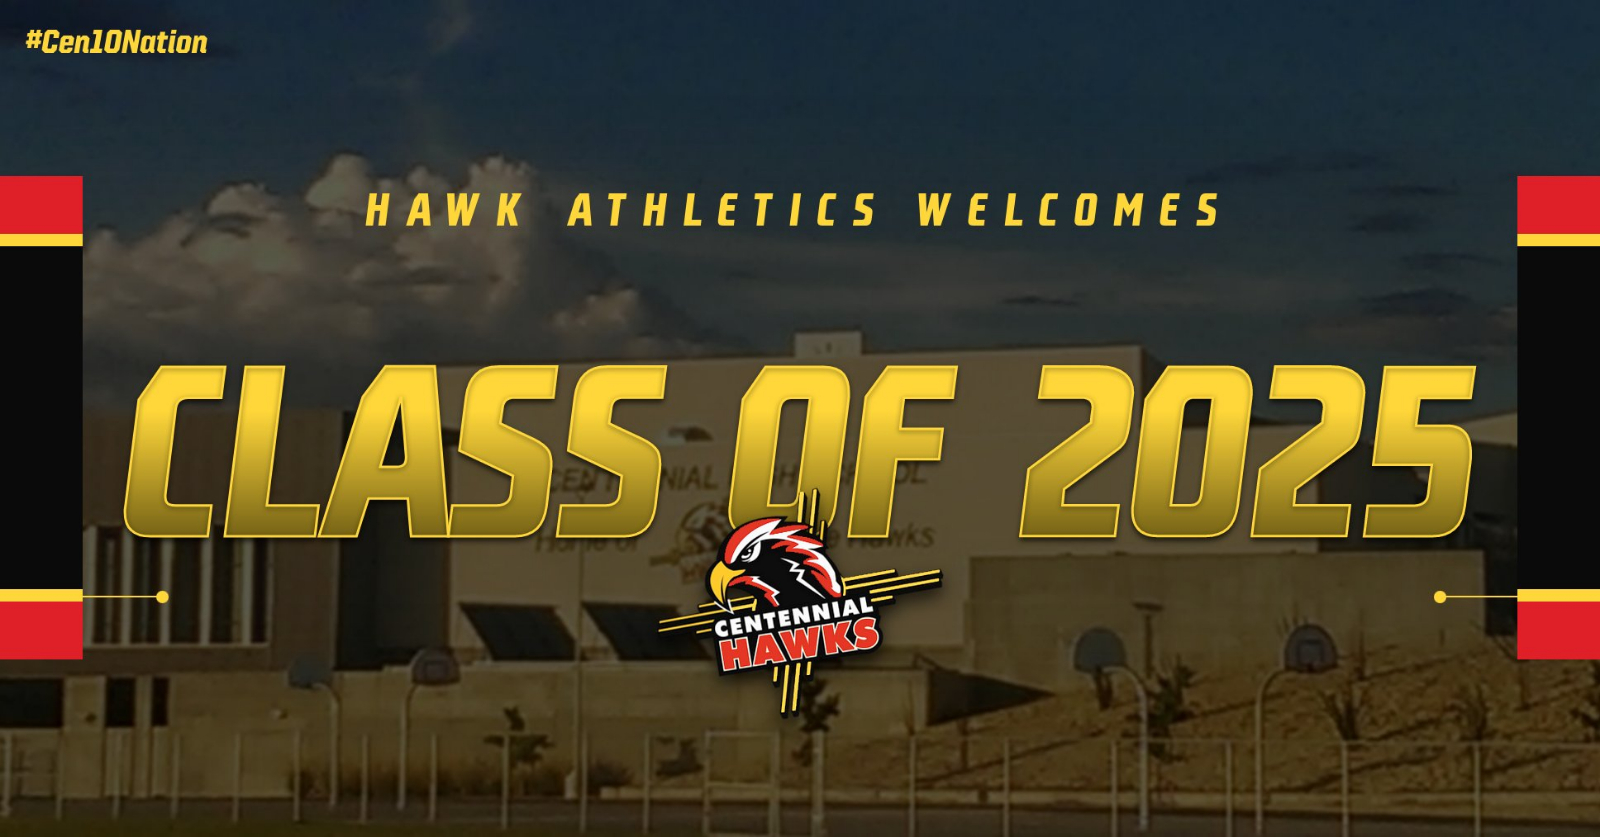 CHS Expo: Welcome Future Hawks